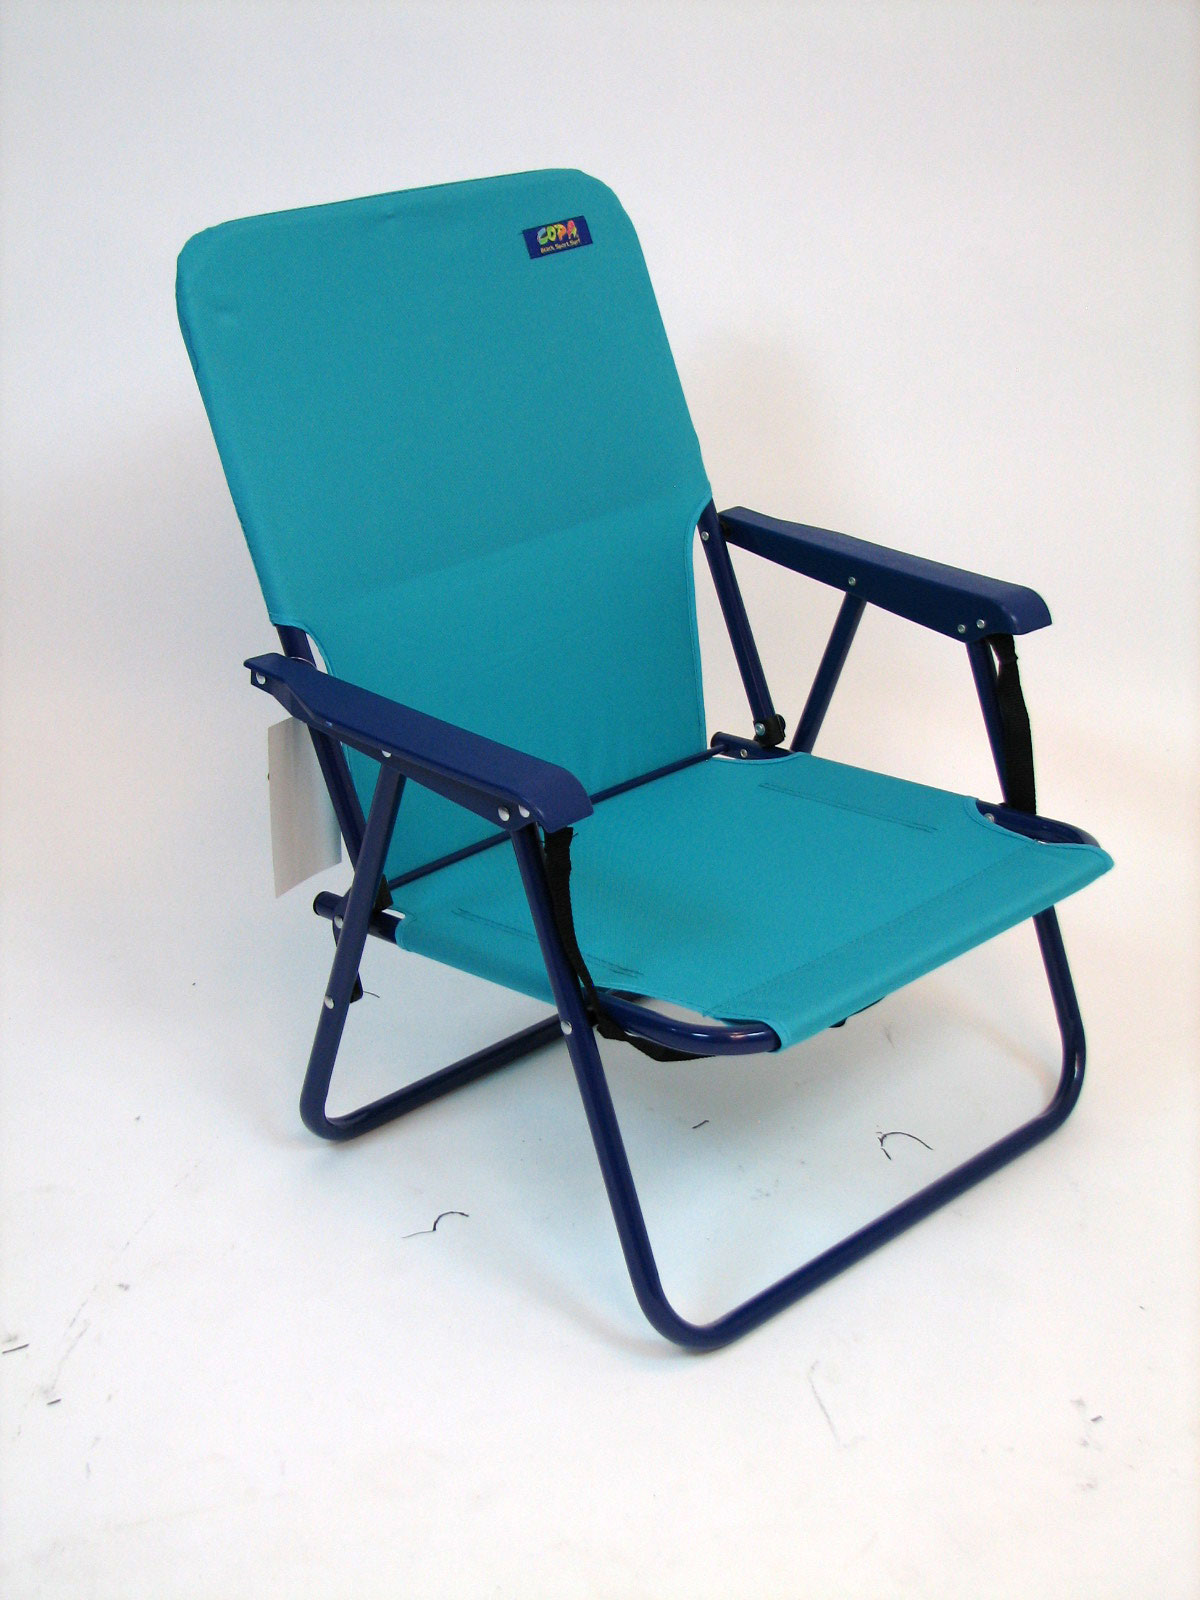 e Position Low Beach Chair by Copa